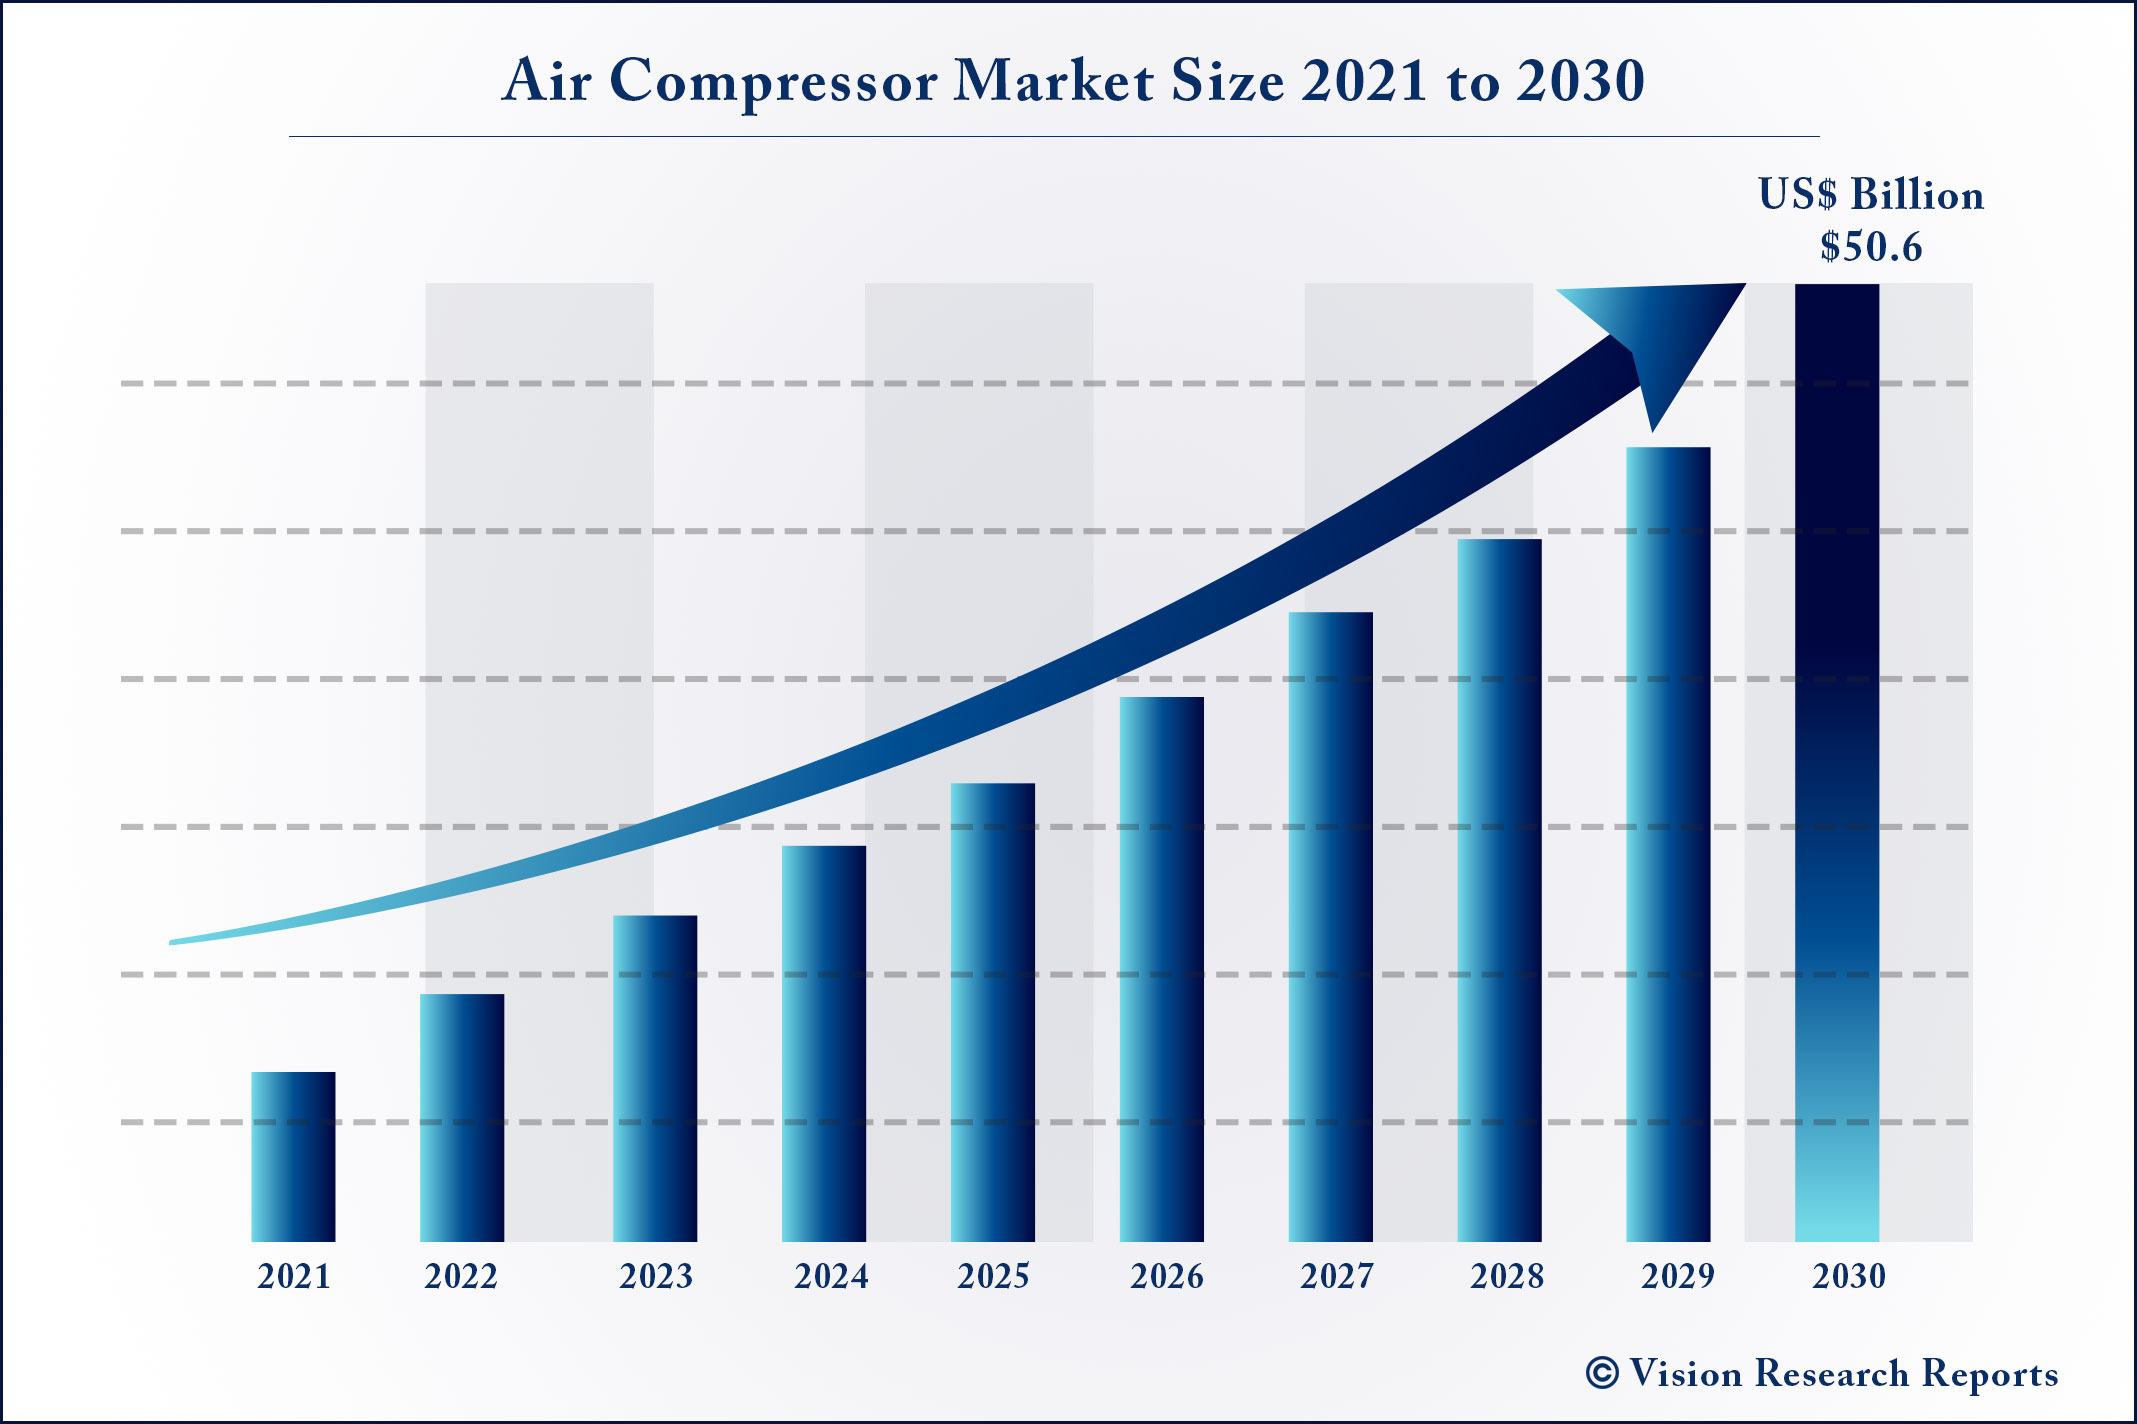 Air Compressor Market Size 2021 to 2030